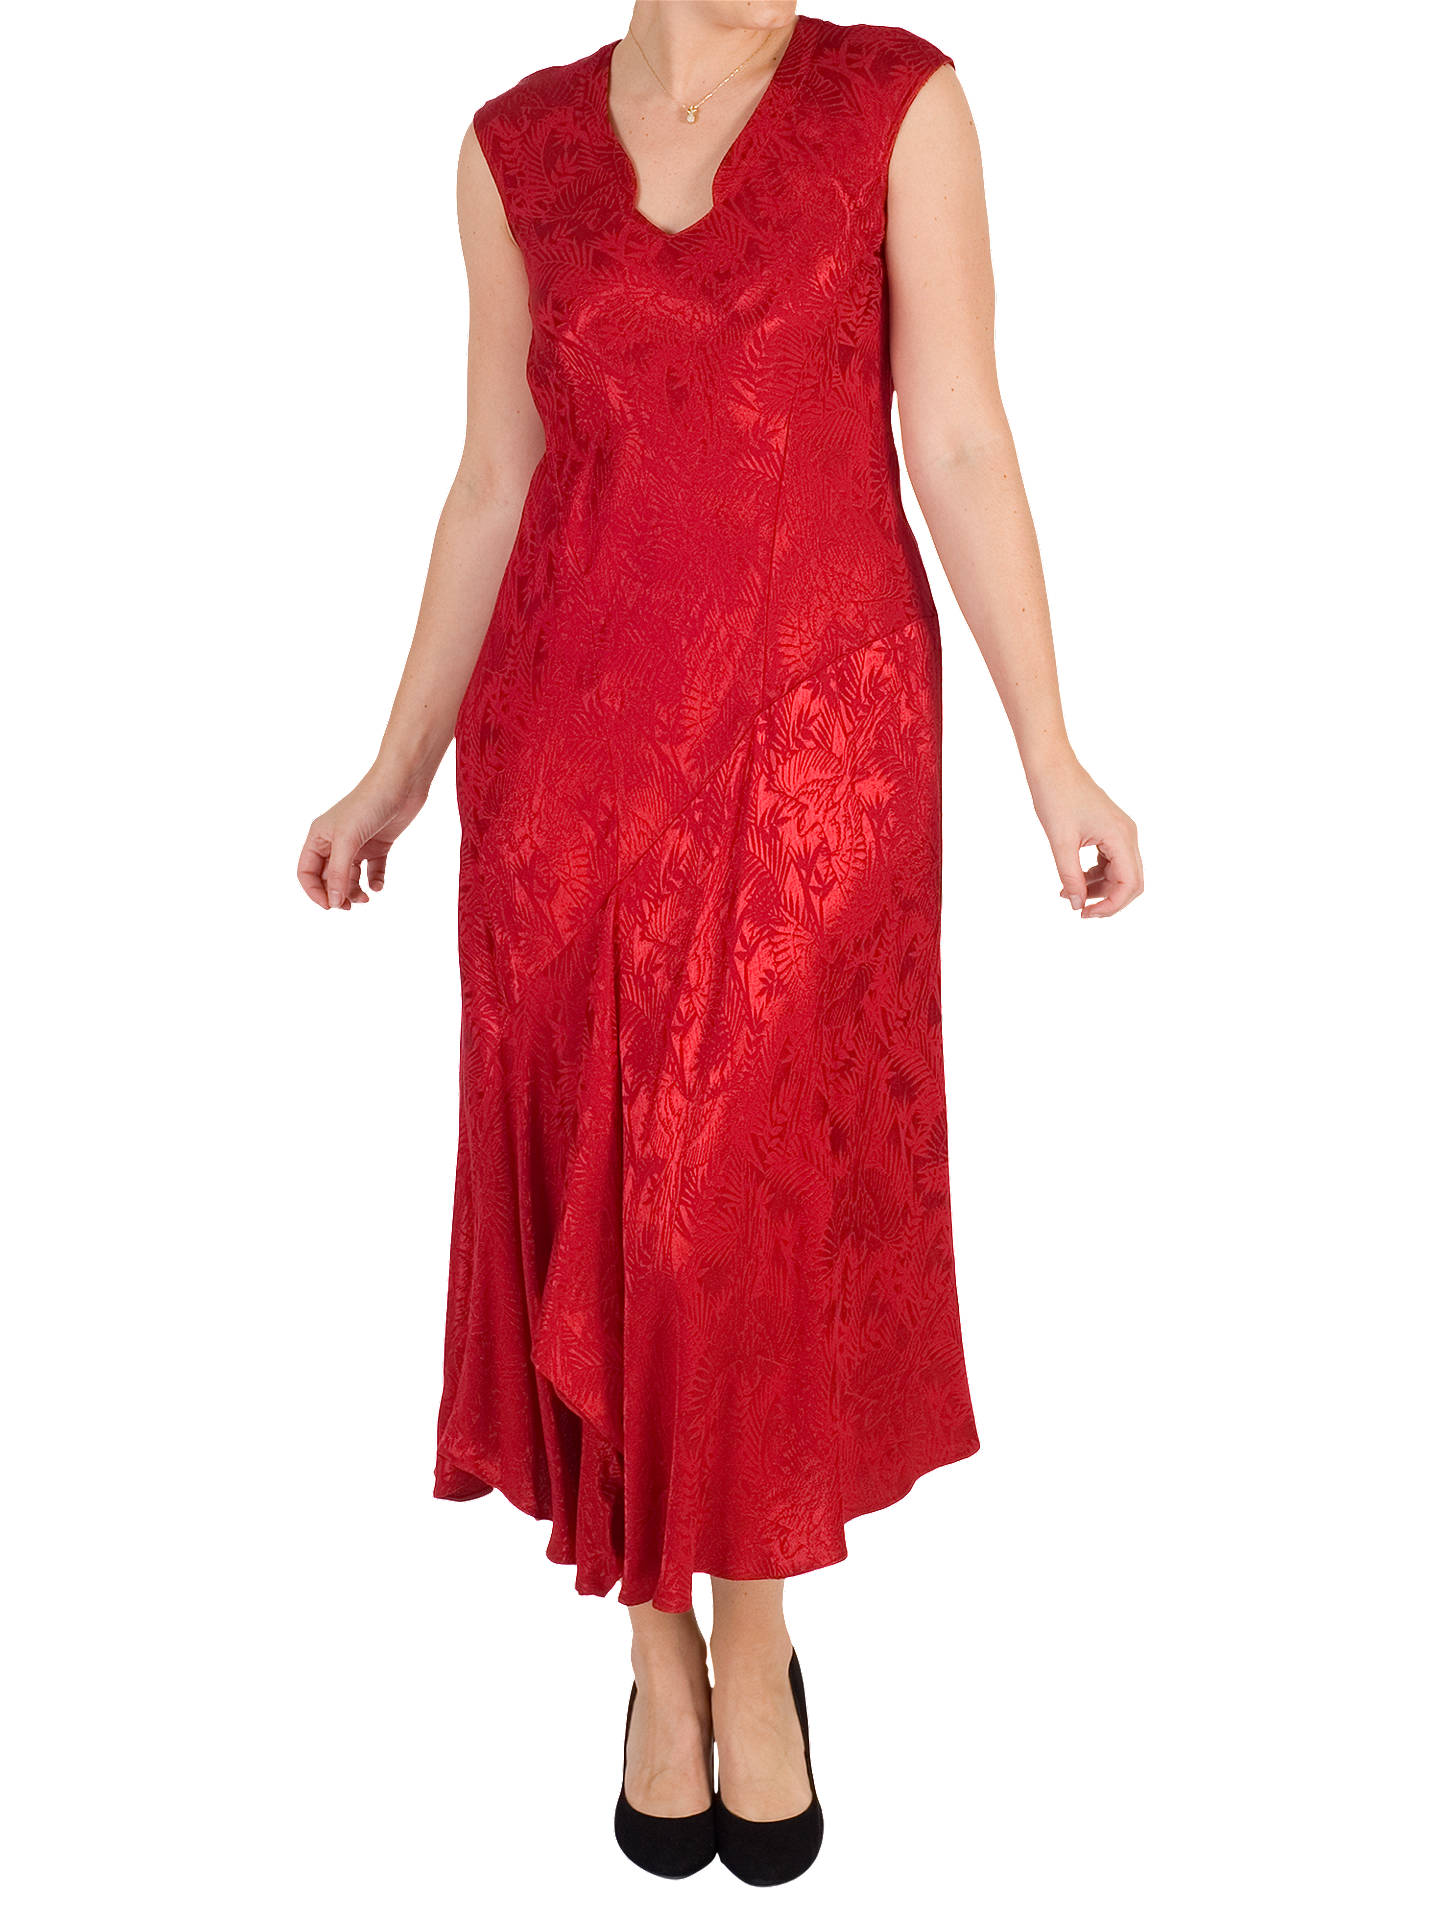 BuyChesca Satin Back Crepe Jacquard Dress, Ruby, 12-14 Online at johnlewis.com